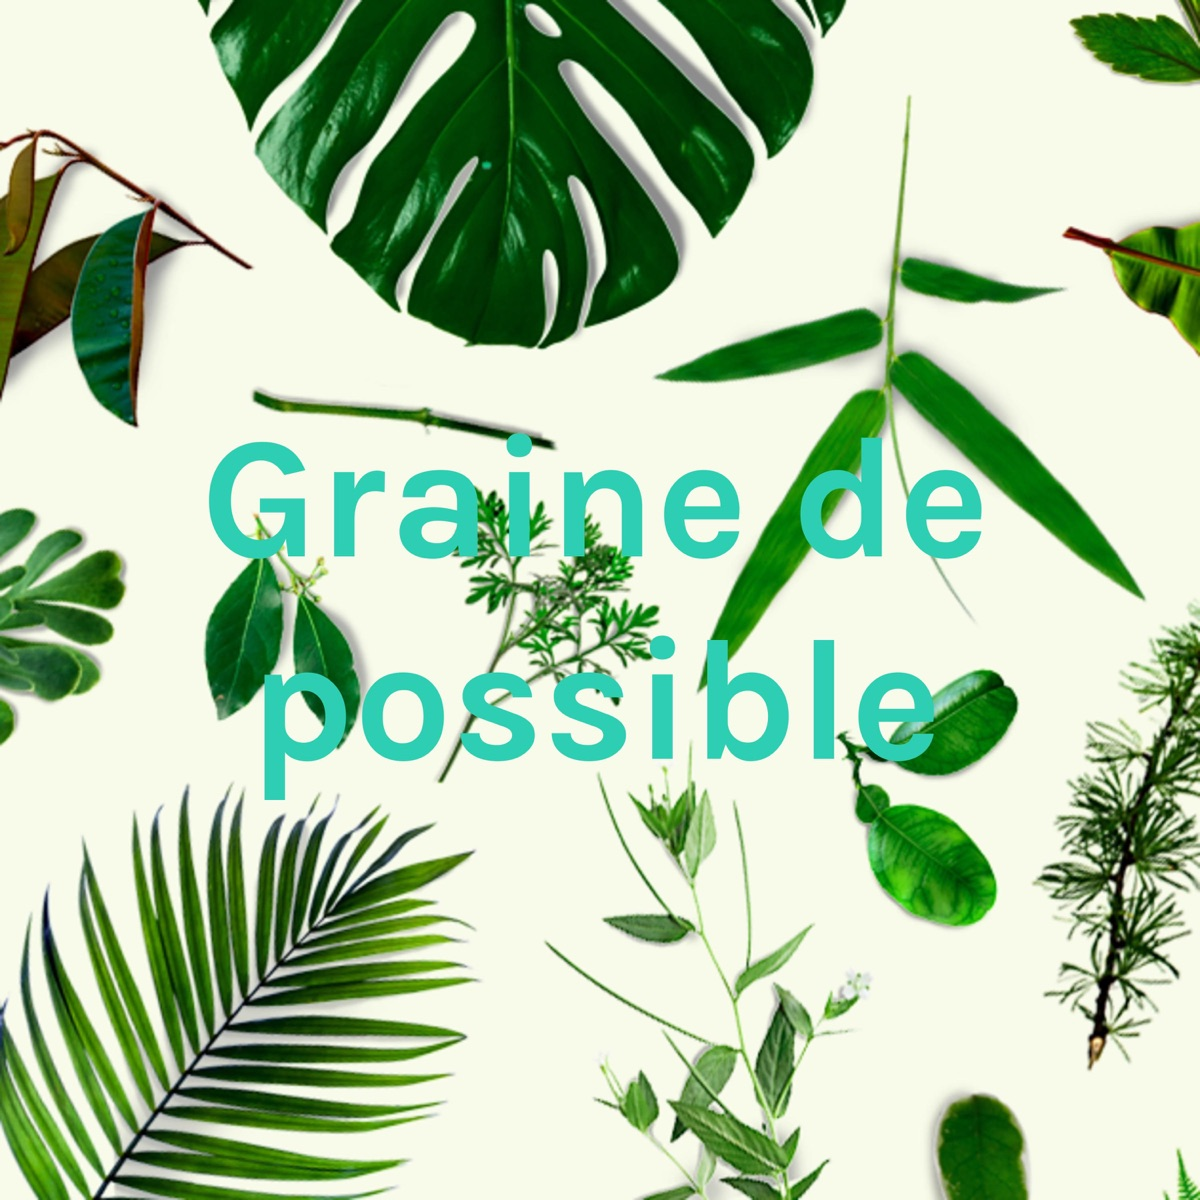 Graine de possible